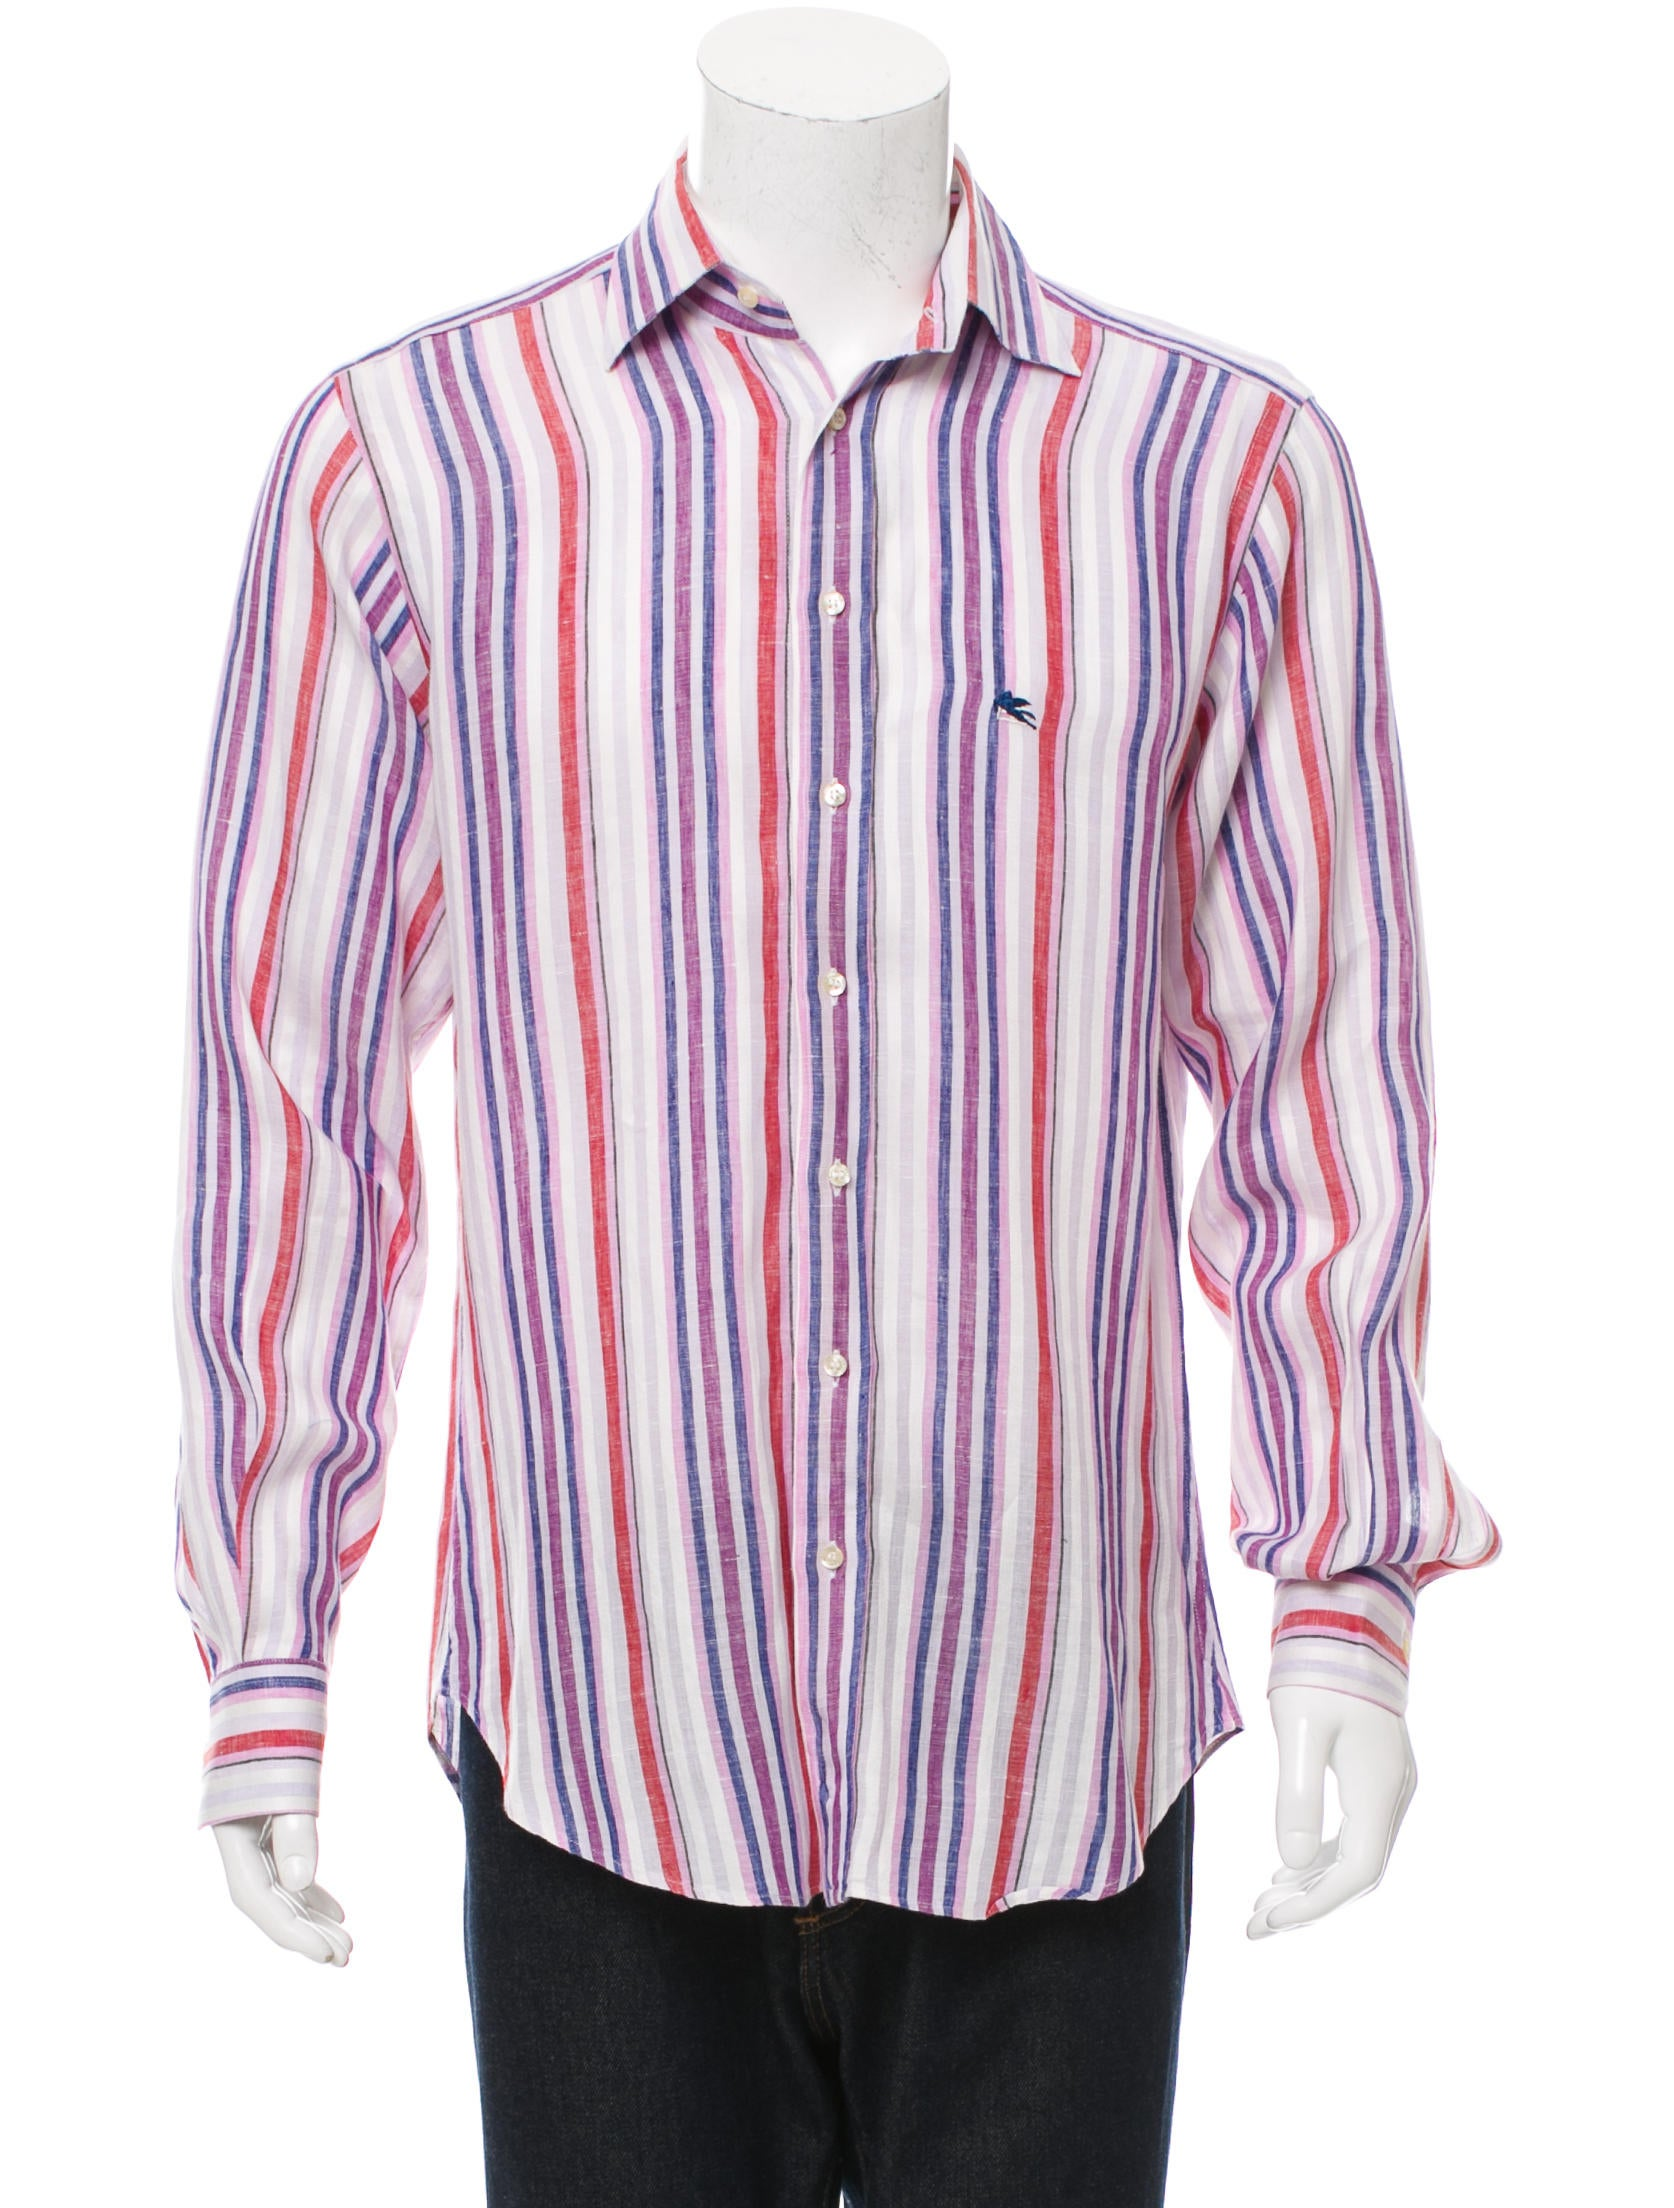 Etro striped button up shirt clothing etr44732 the for Striped button up shirt mens